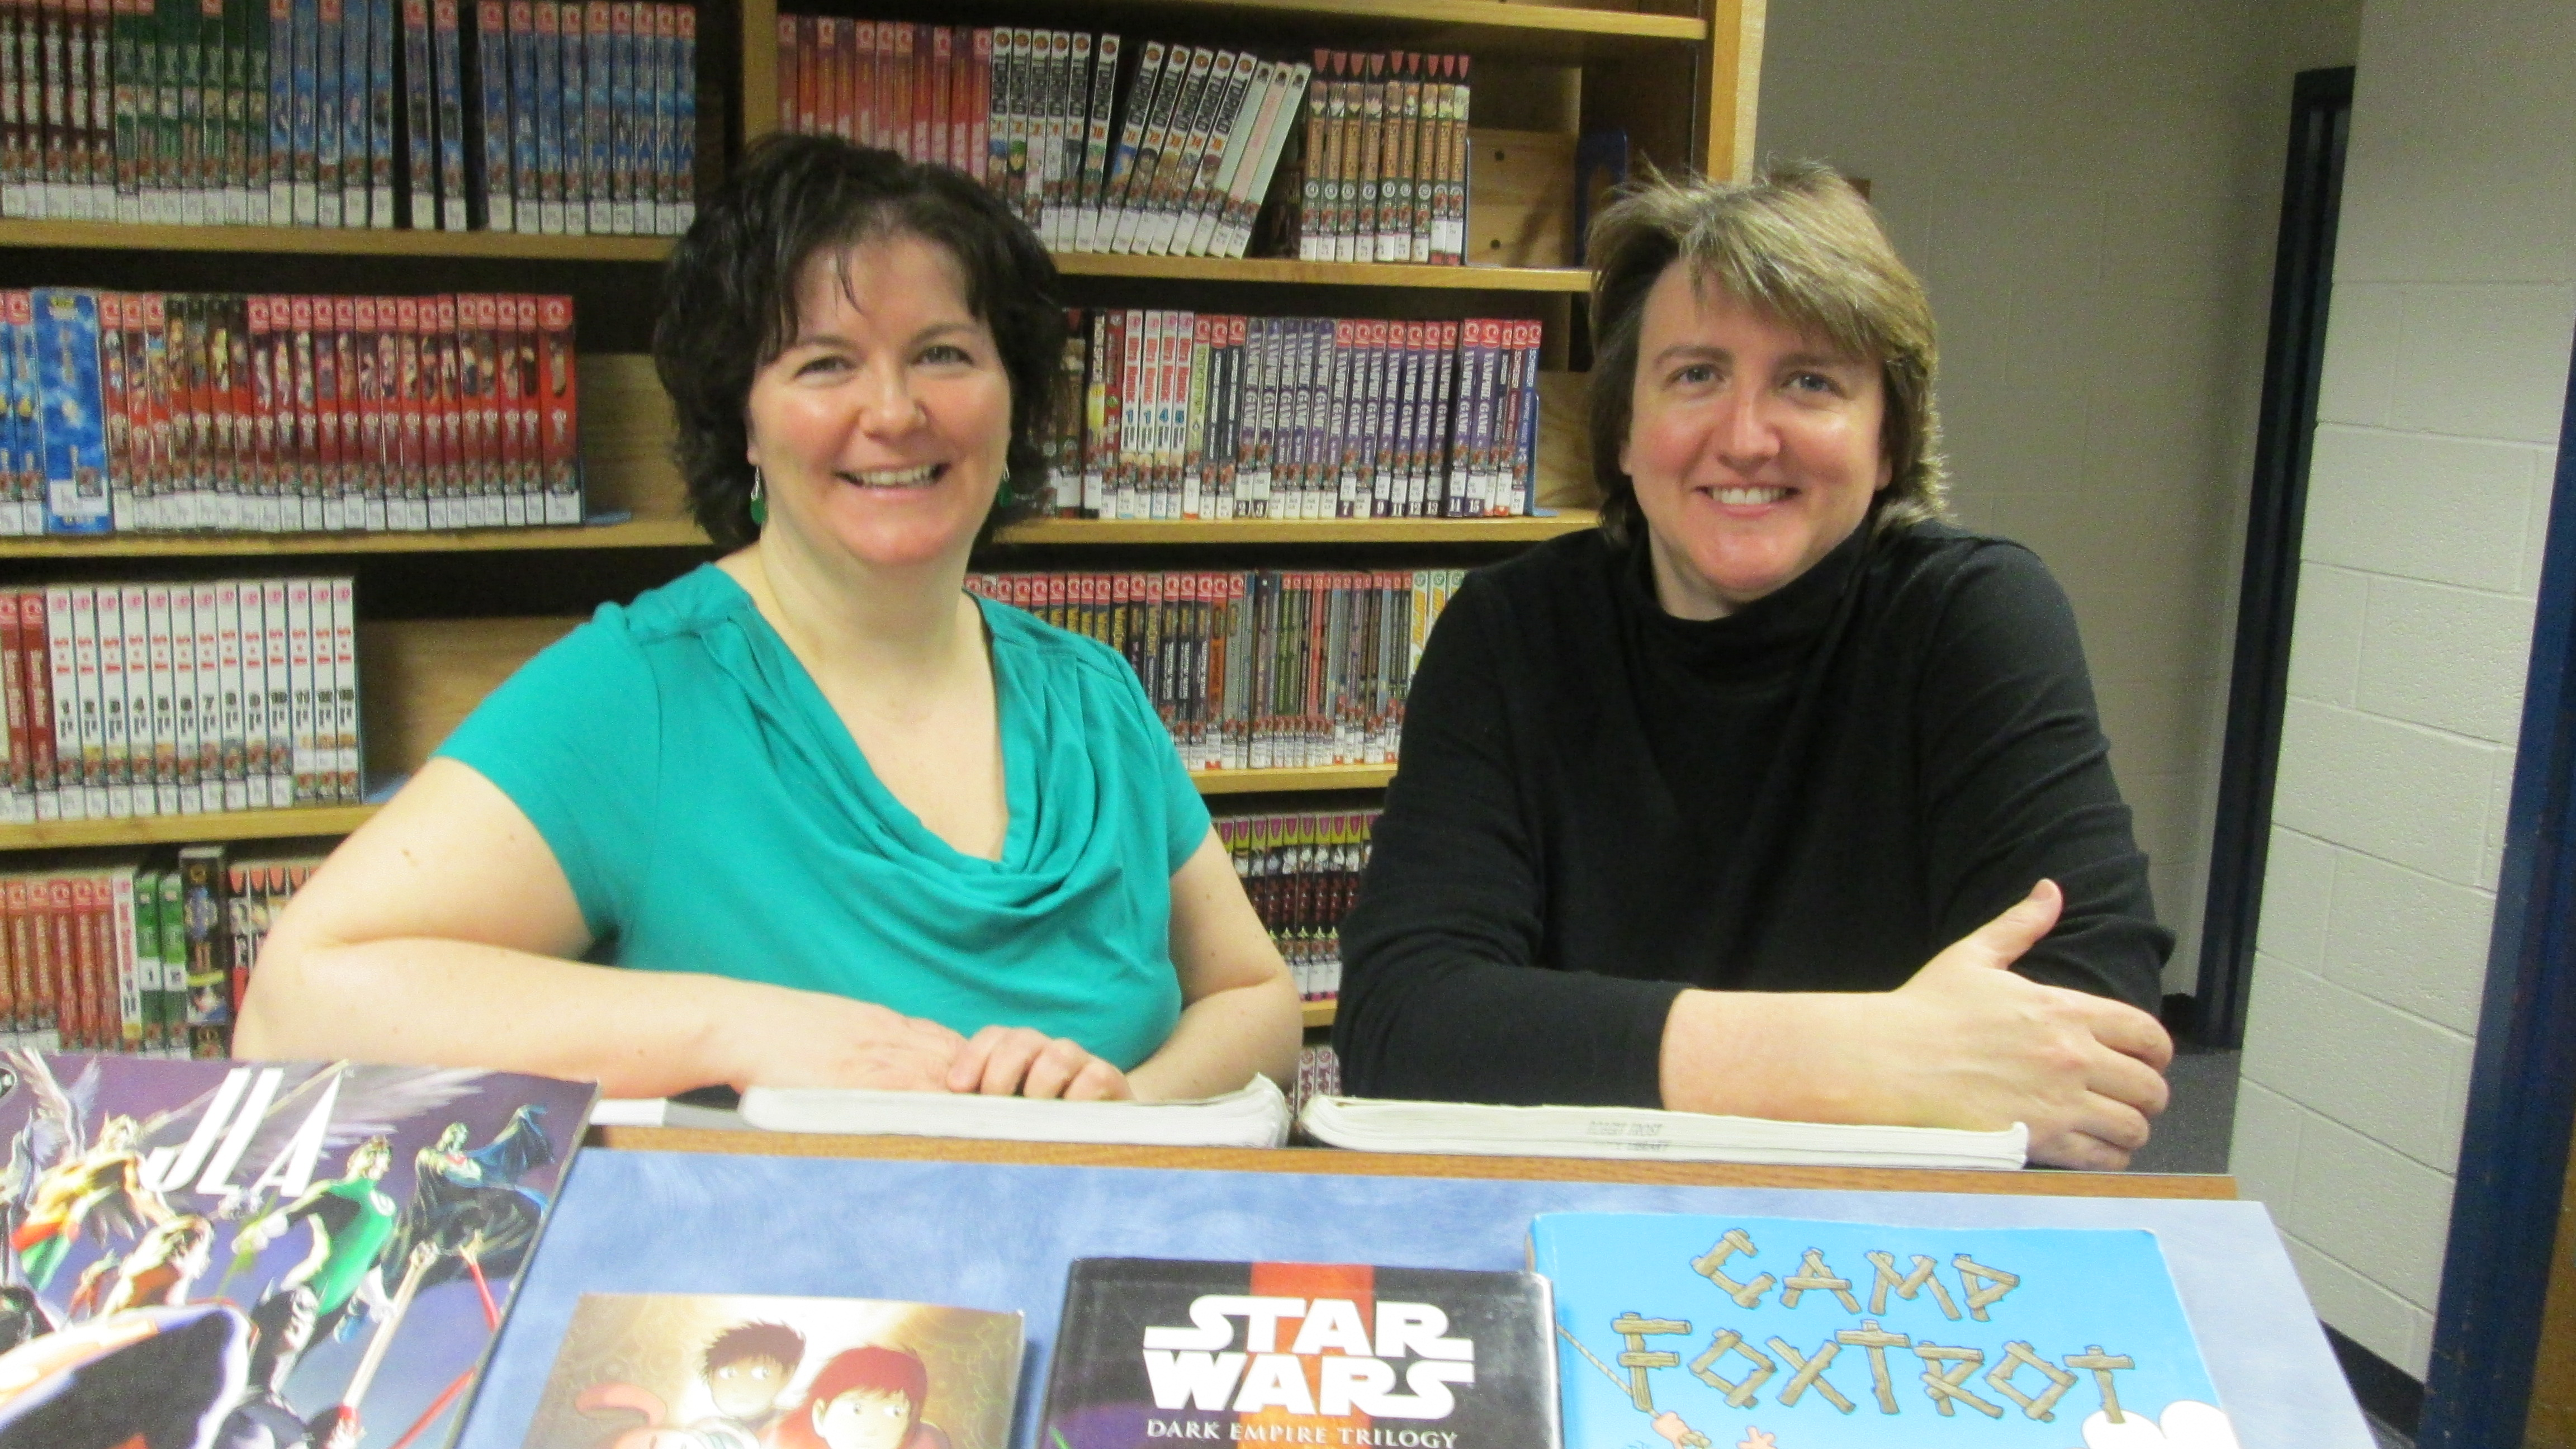 a picture of the Frost librarians, Ms. Alexander and Ms. Powers